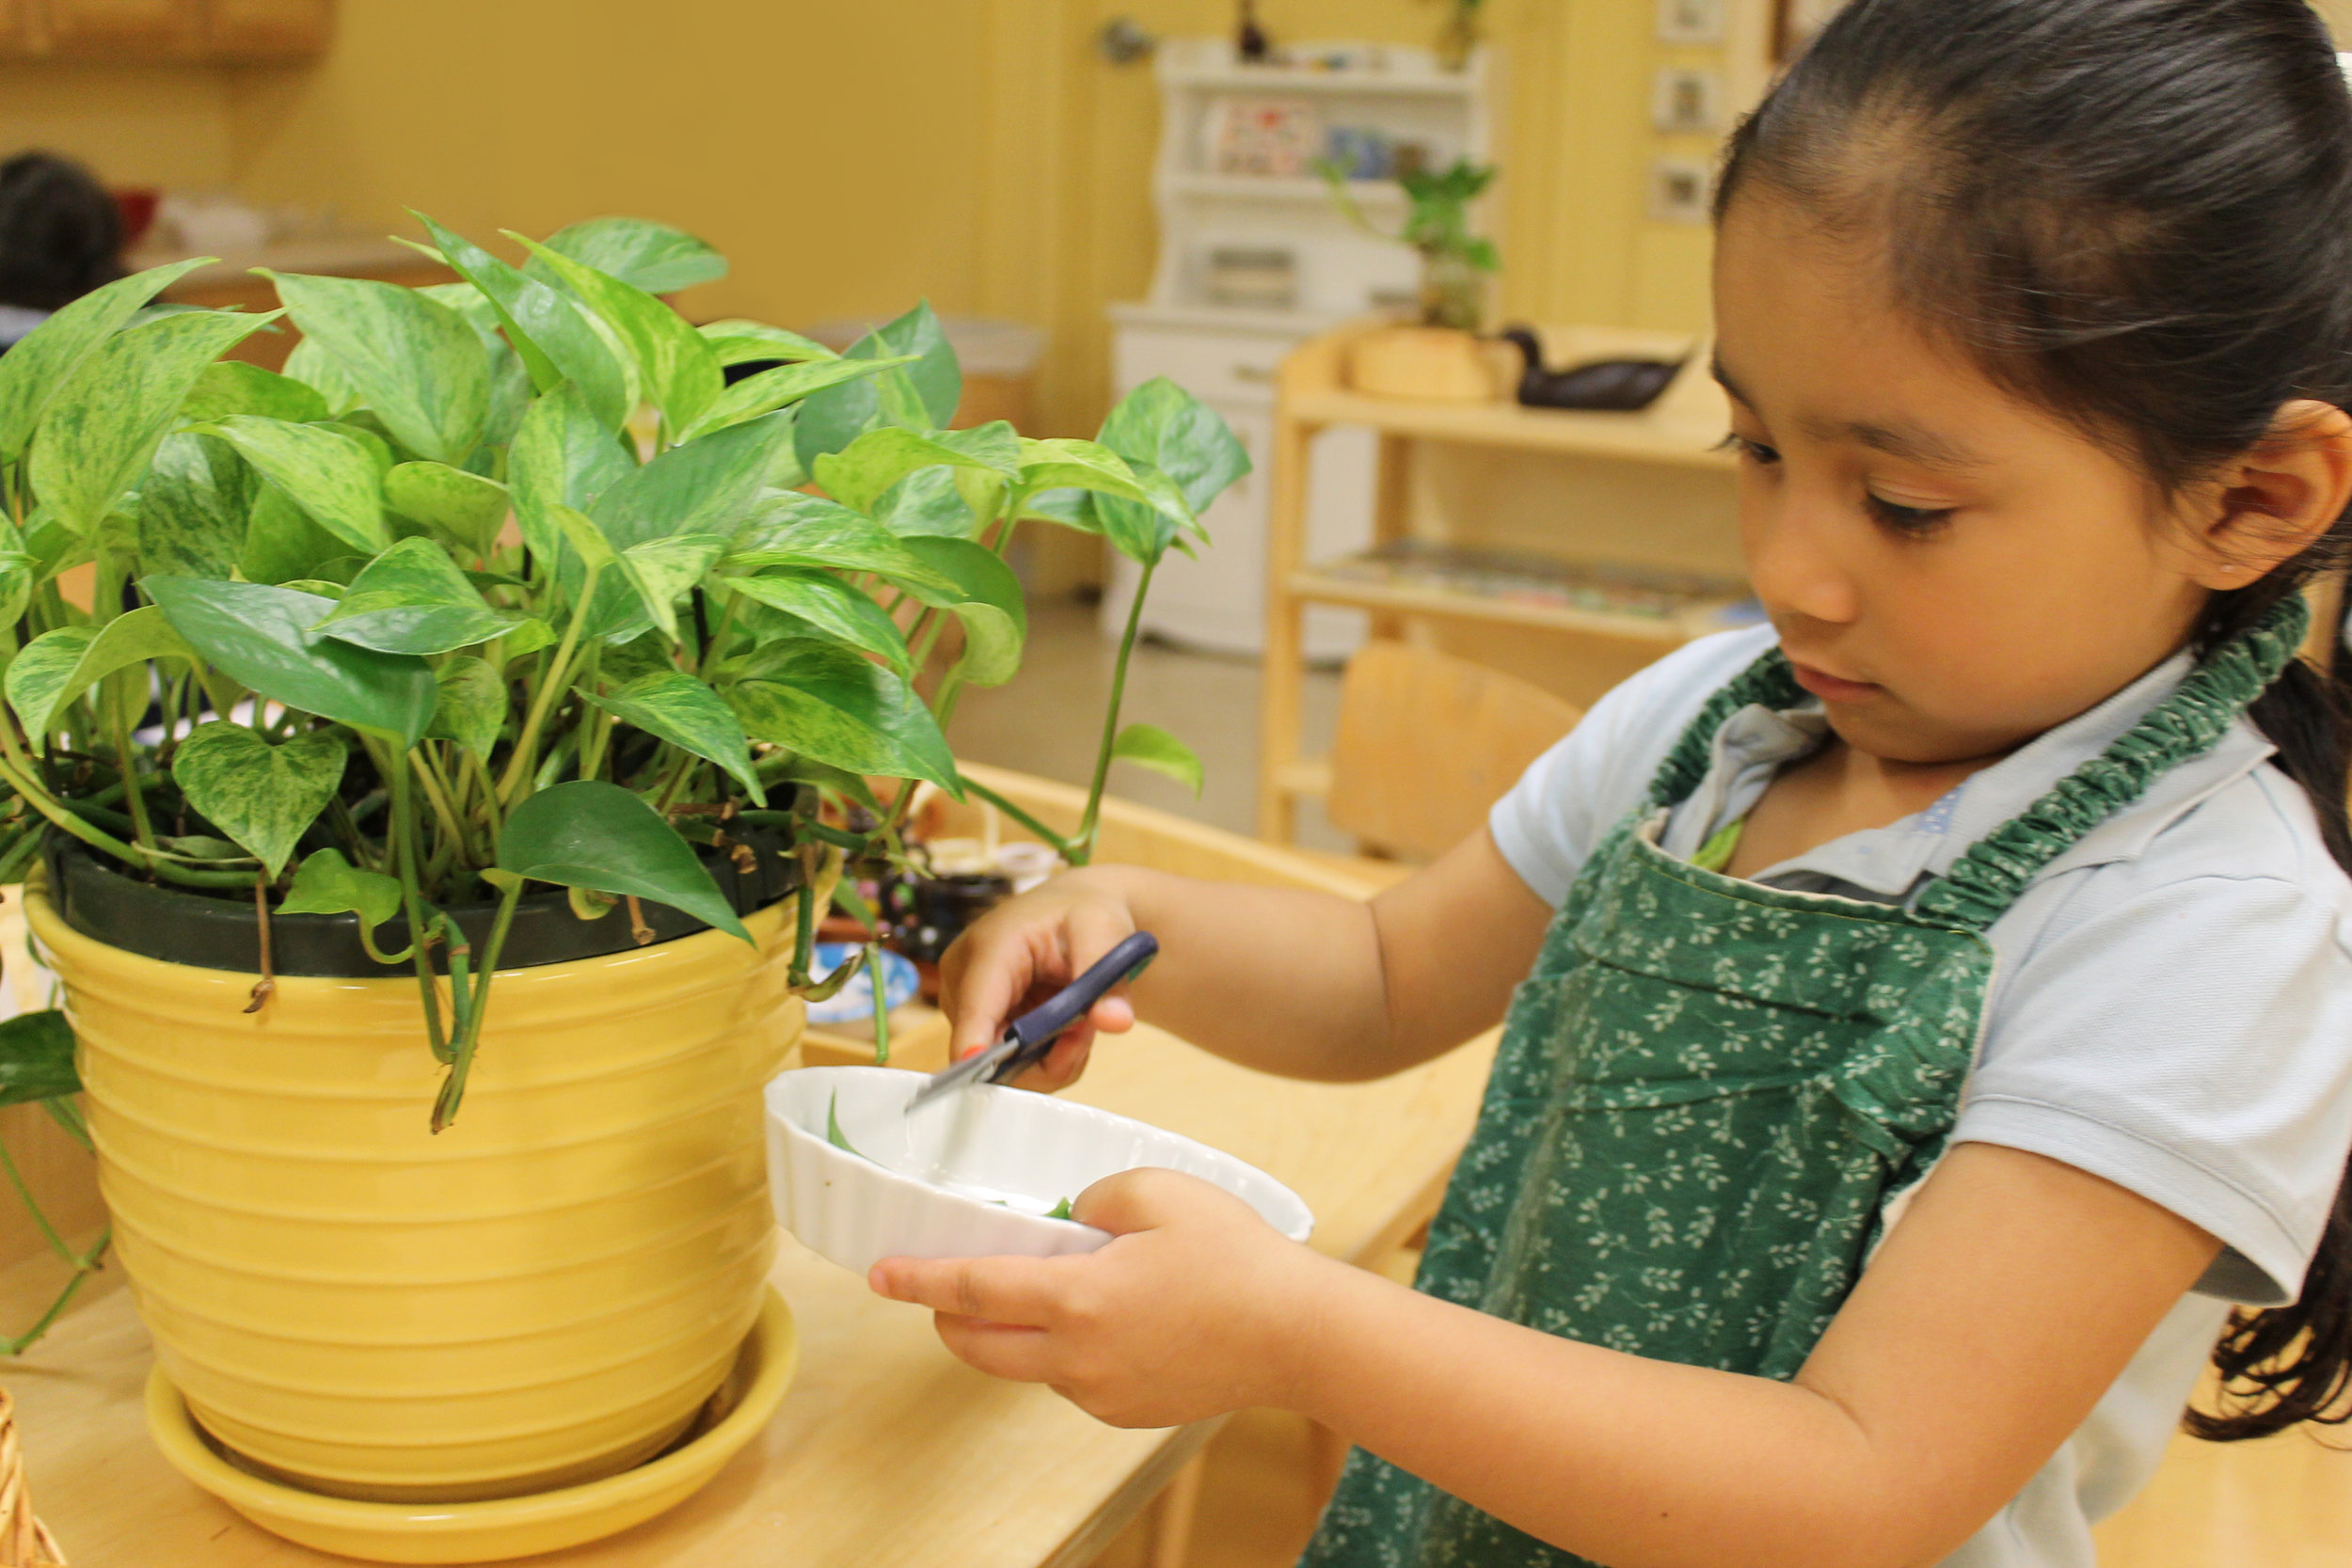 Photo caption: Girl pruning the plants in Siembra's classroom.